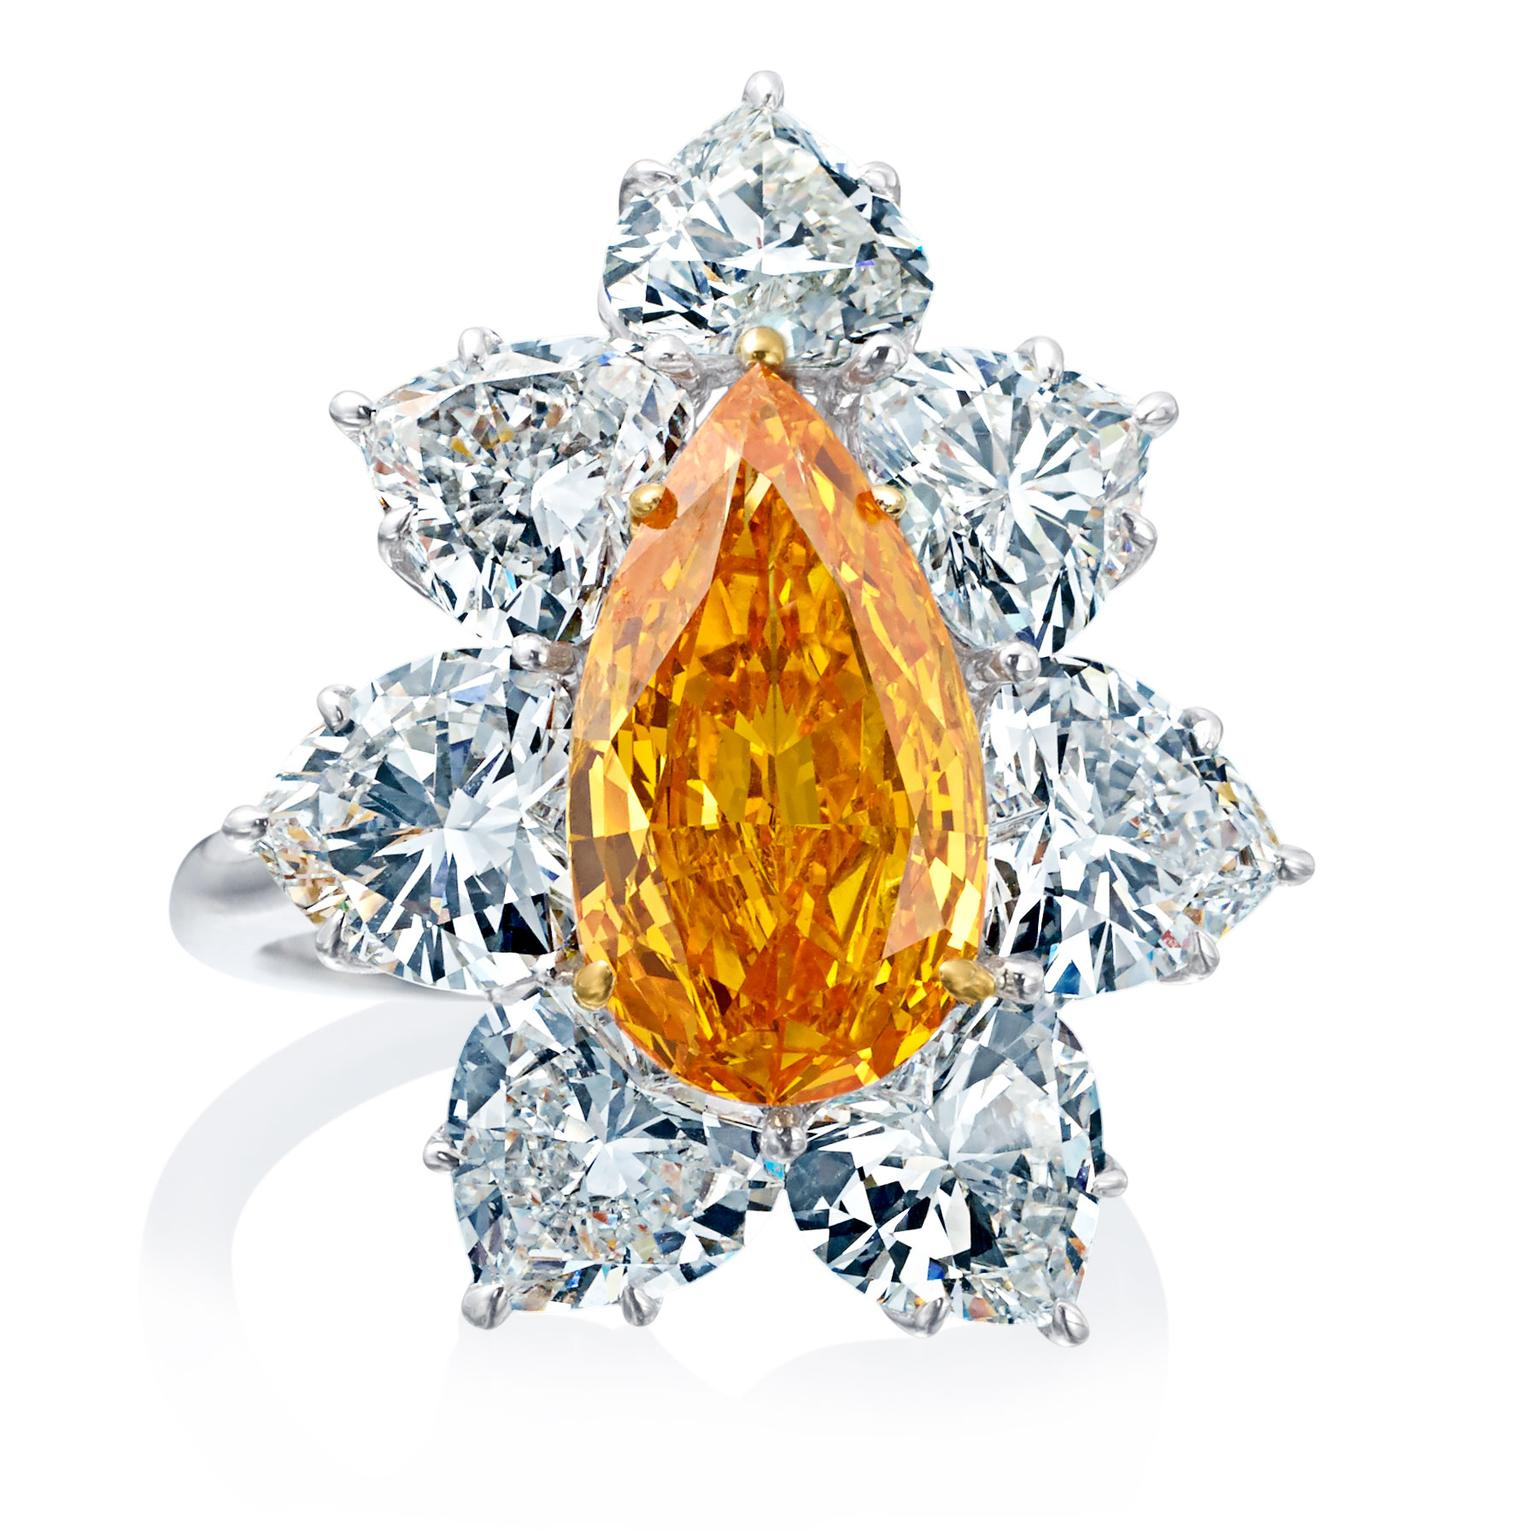 Boodles 3 carat orange pear diamond ring